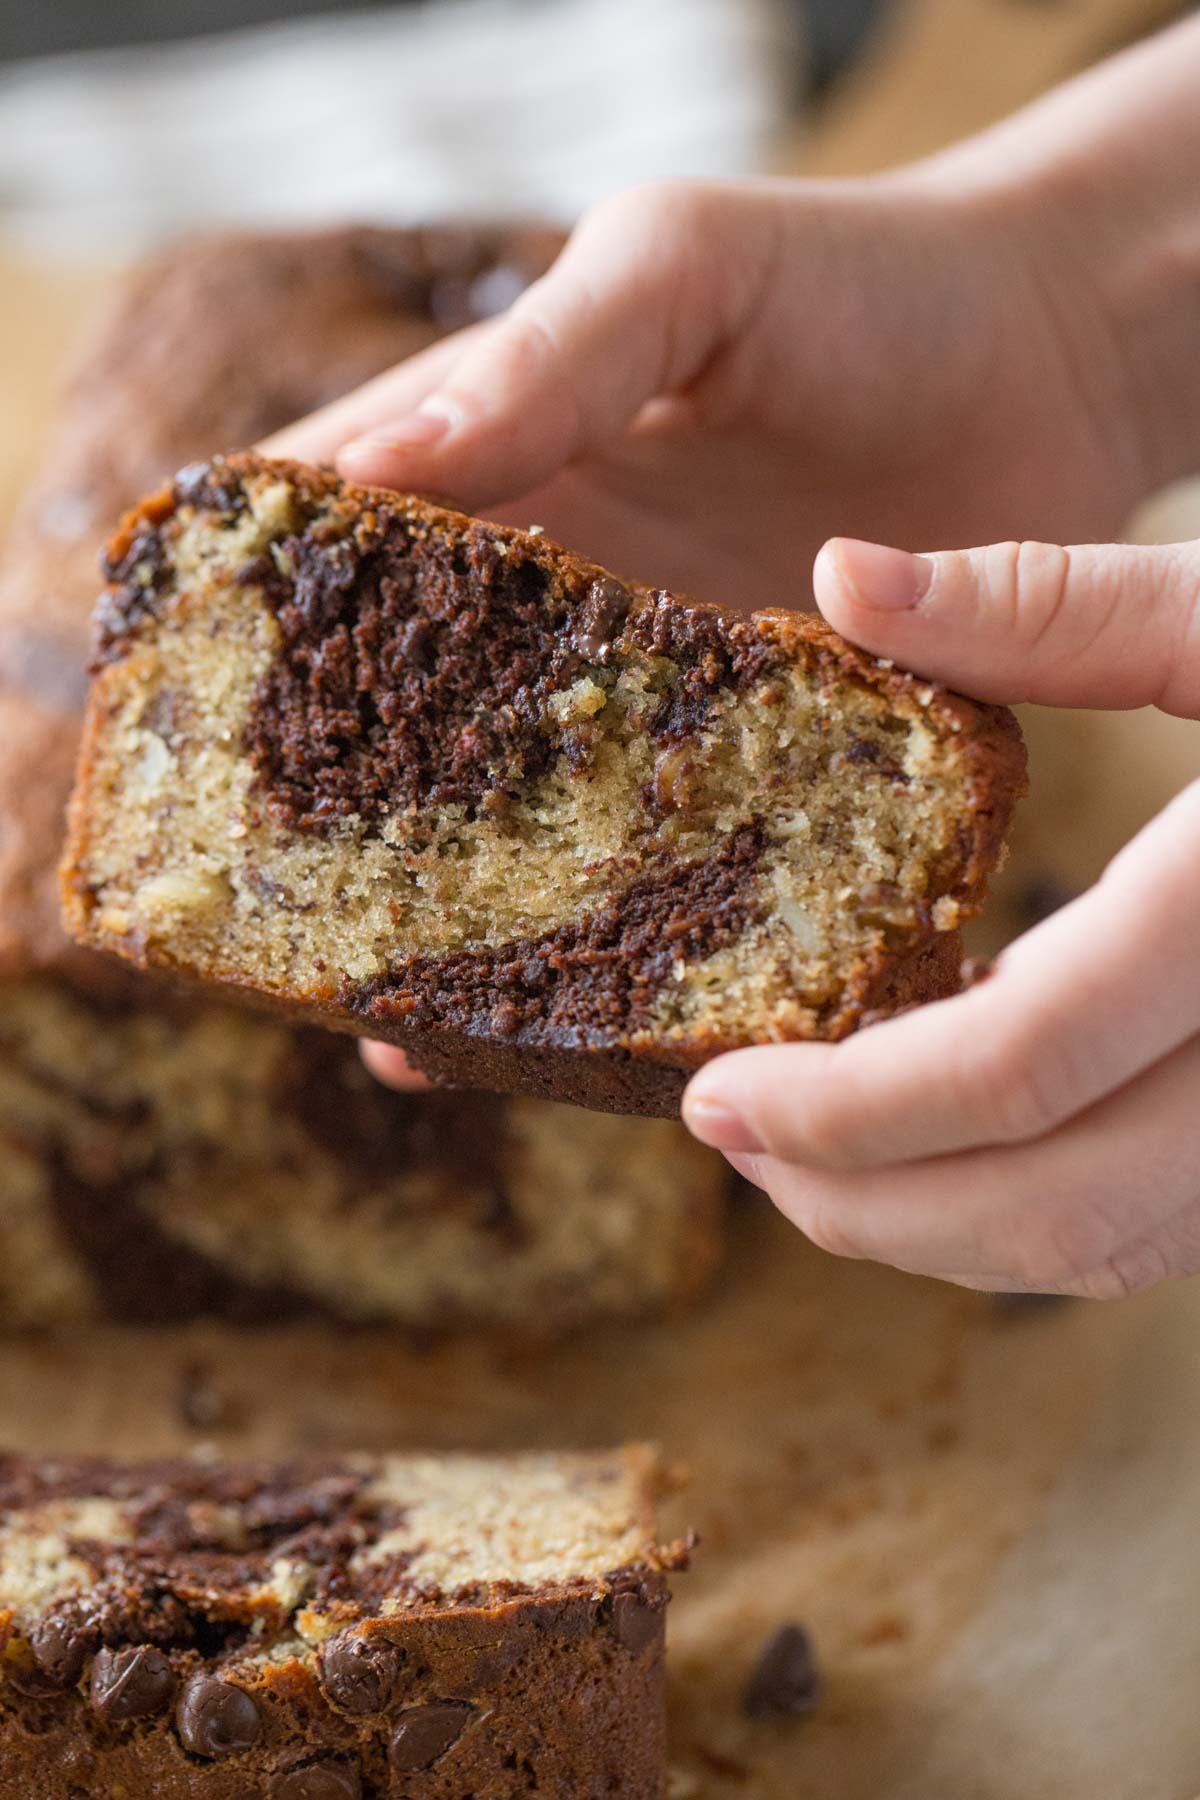 A slice of Marbled Chocolate Banana Bread.